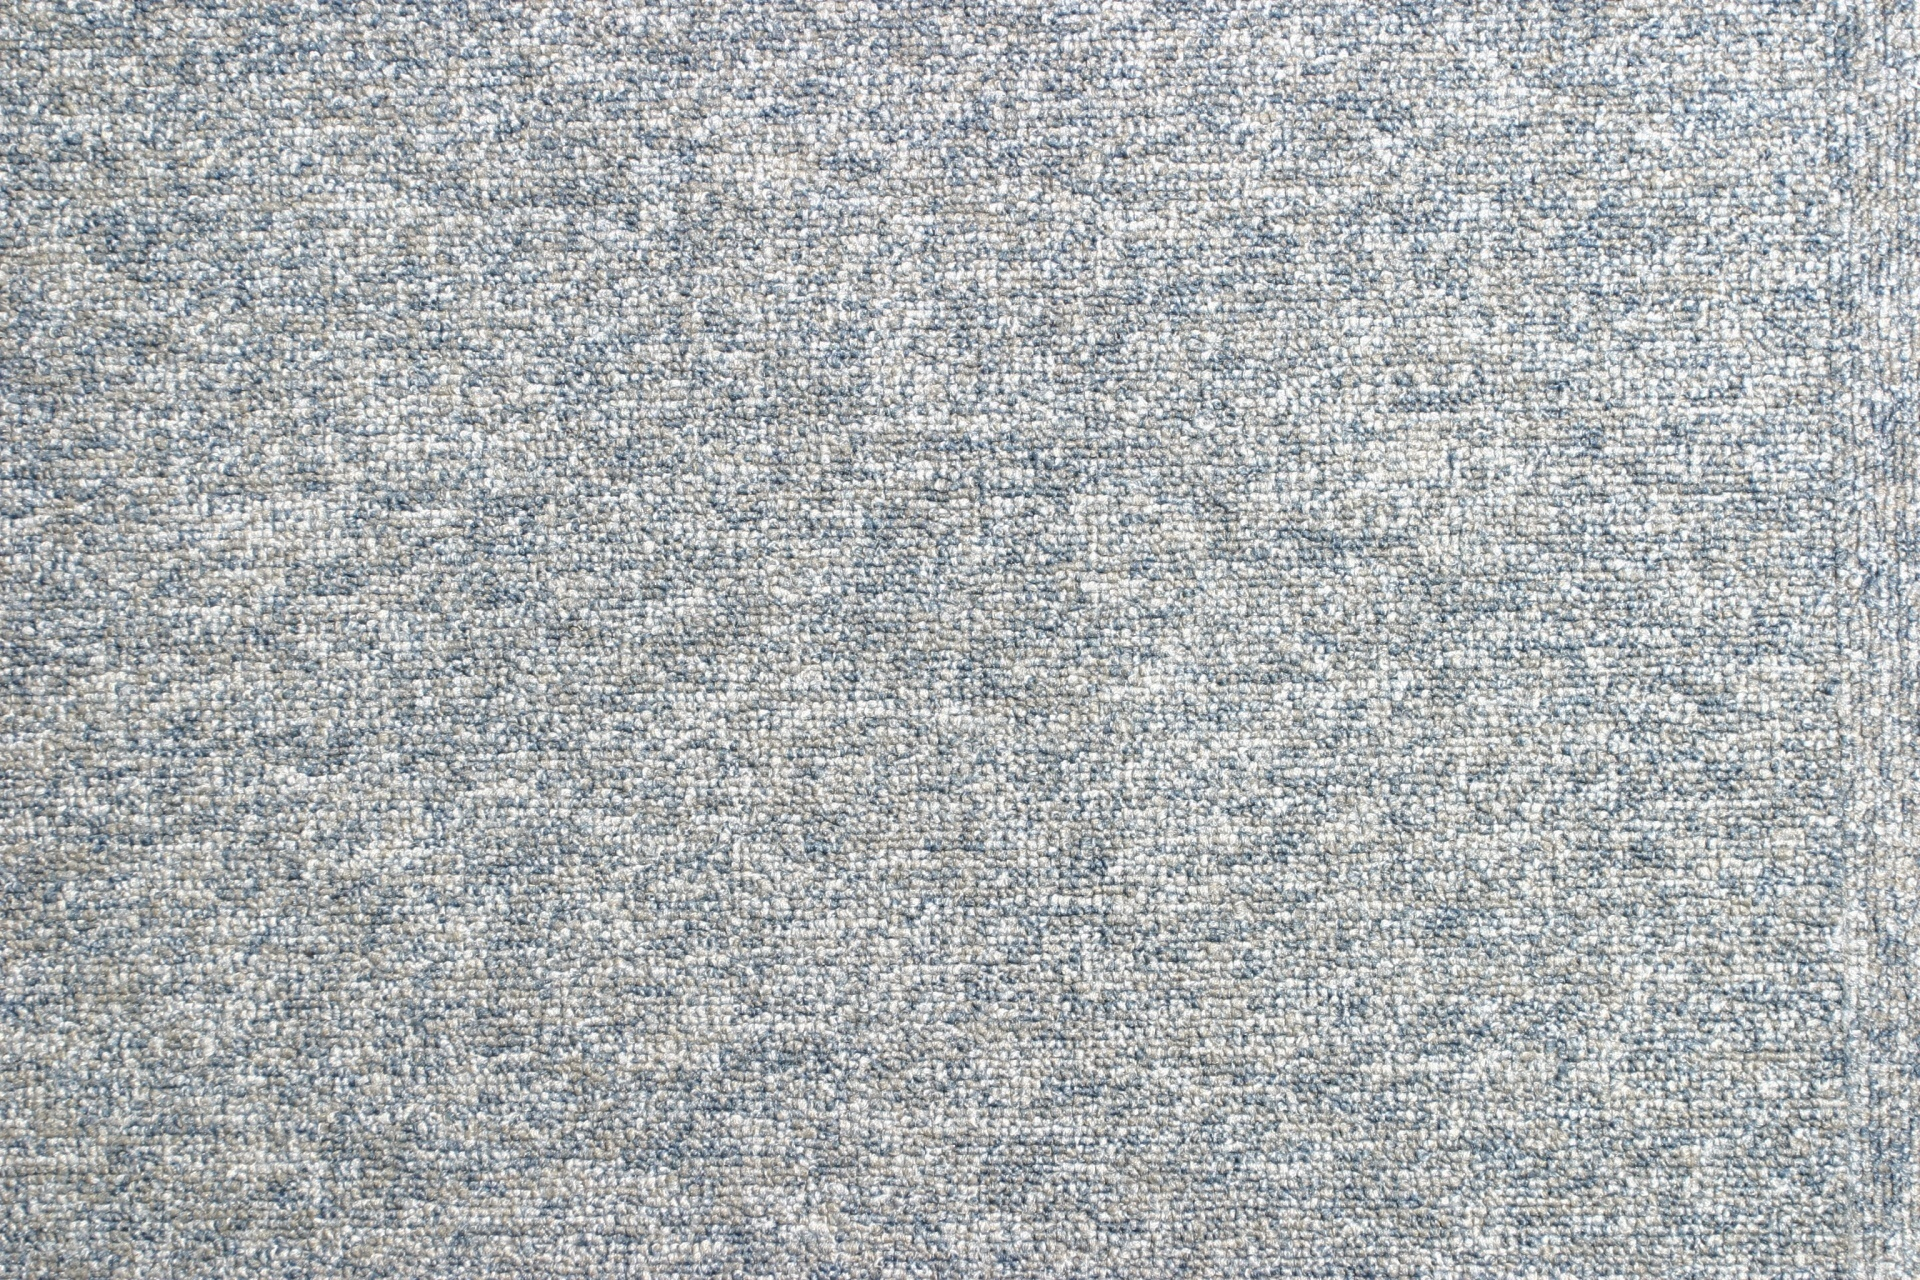 carpet-after